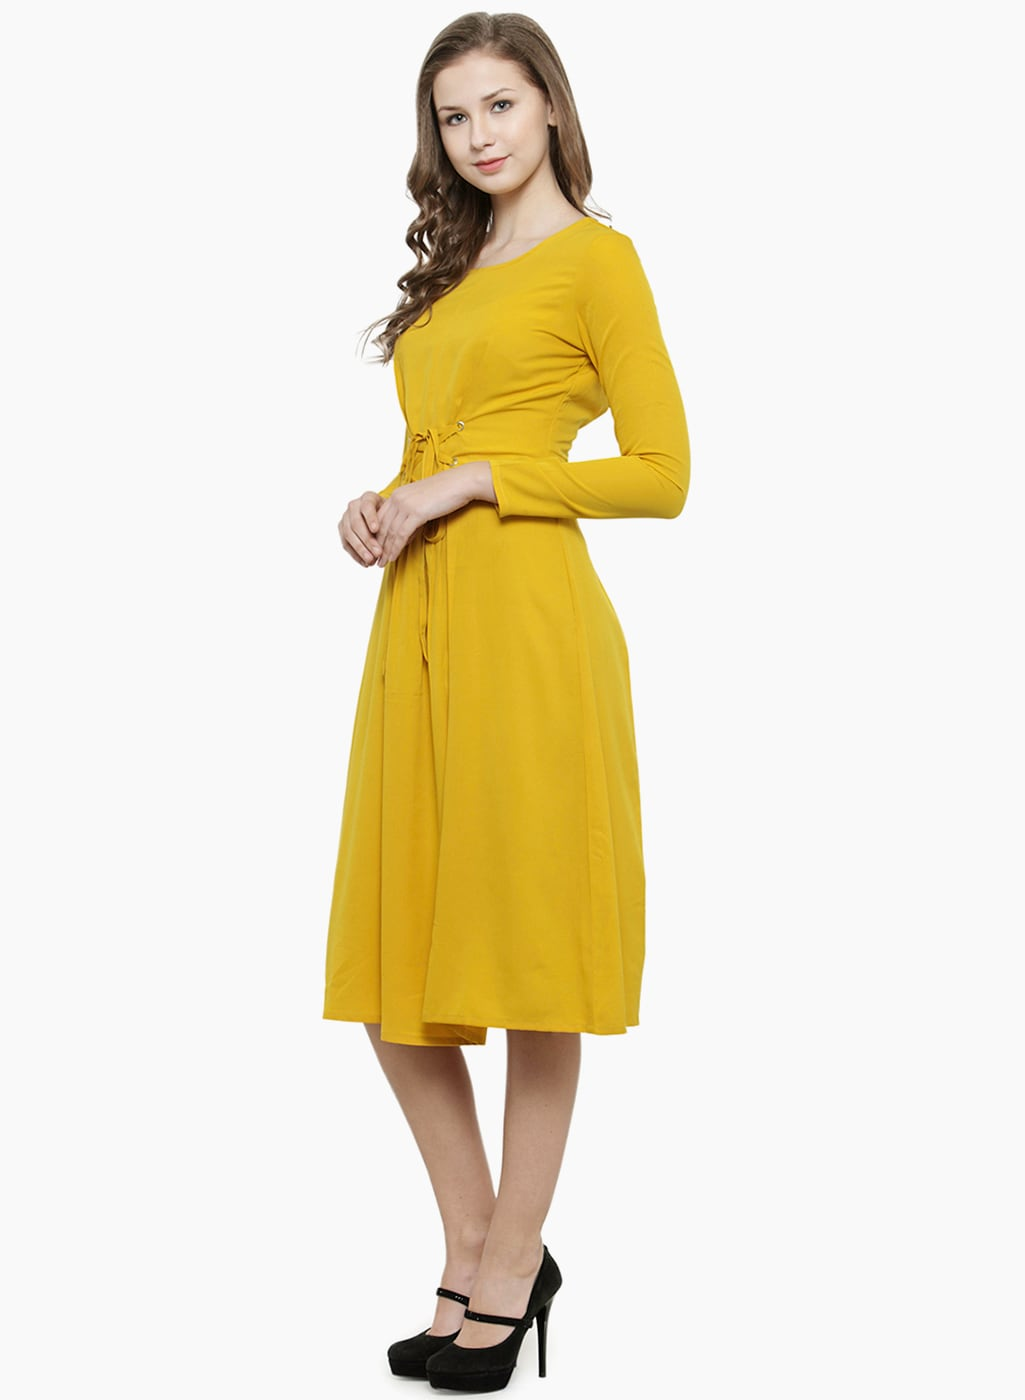 fe8297ada8 Yellow Off White Women Dresses Magnetic Designs - Buy Yellow Off White  Women Dresses Magnetic Designs online in India - Jabong